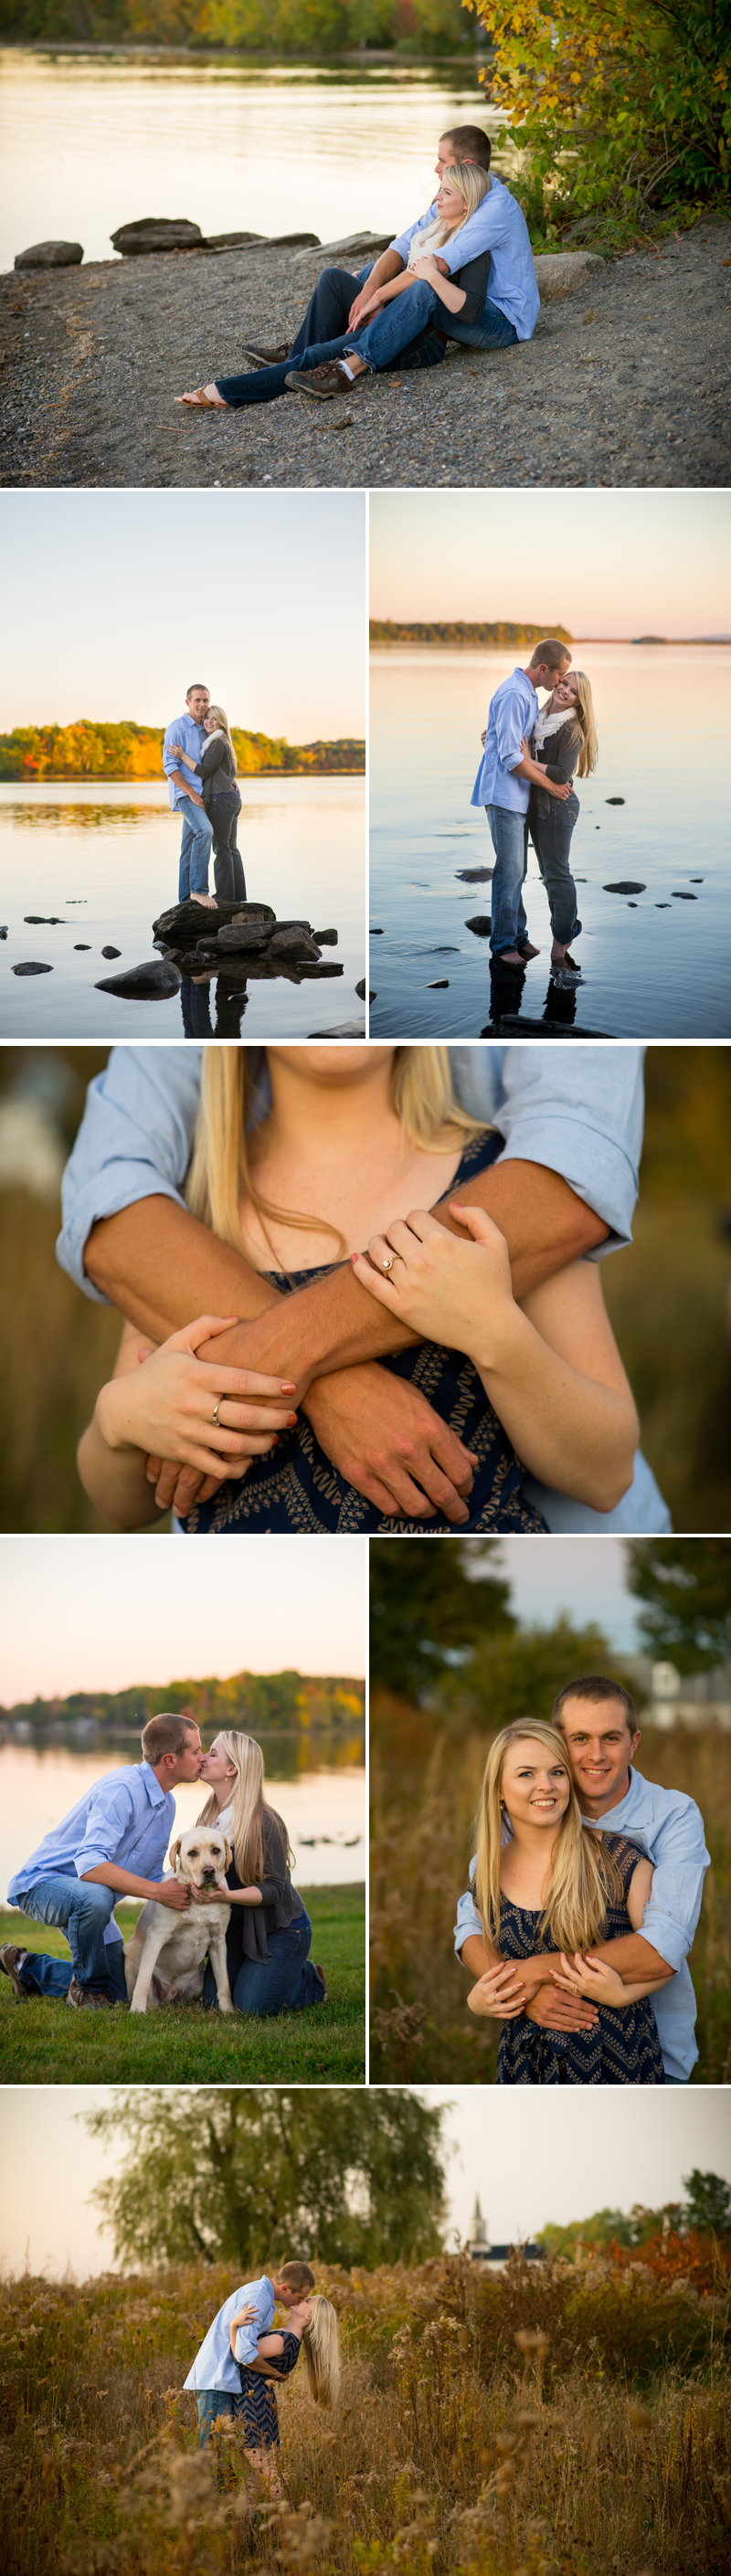 lorraine-mitch-bangor-engagment-haley-j-photography-2.jpg